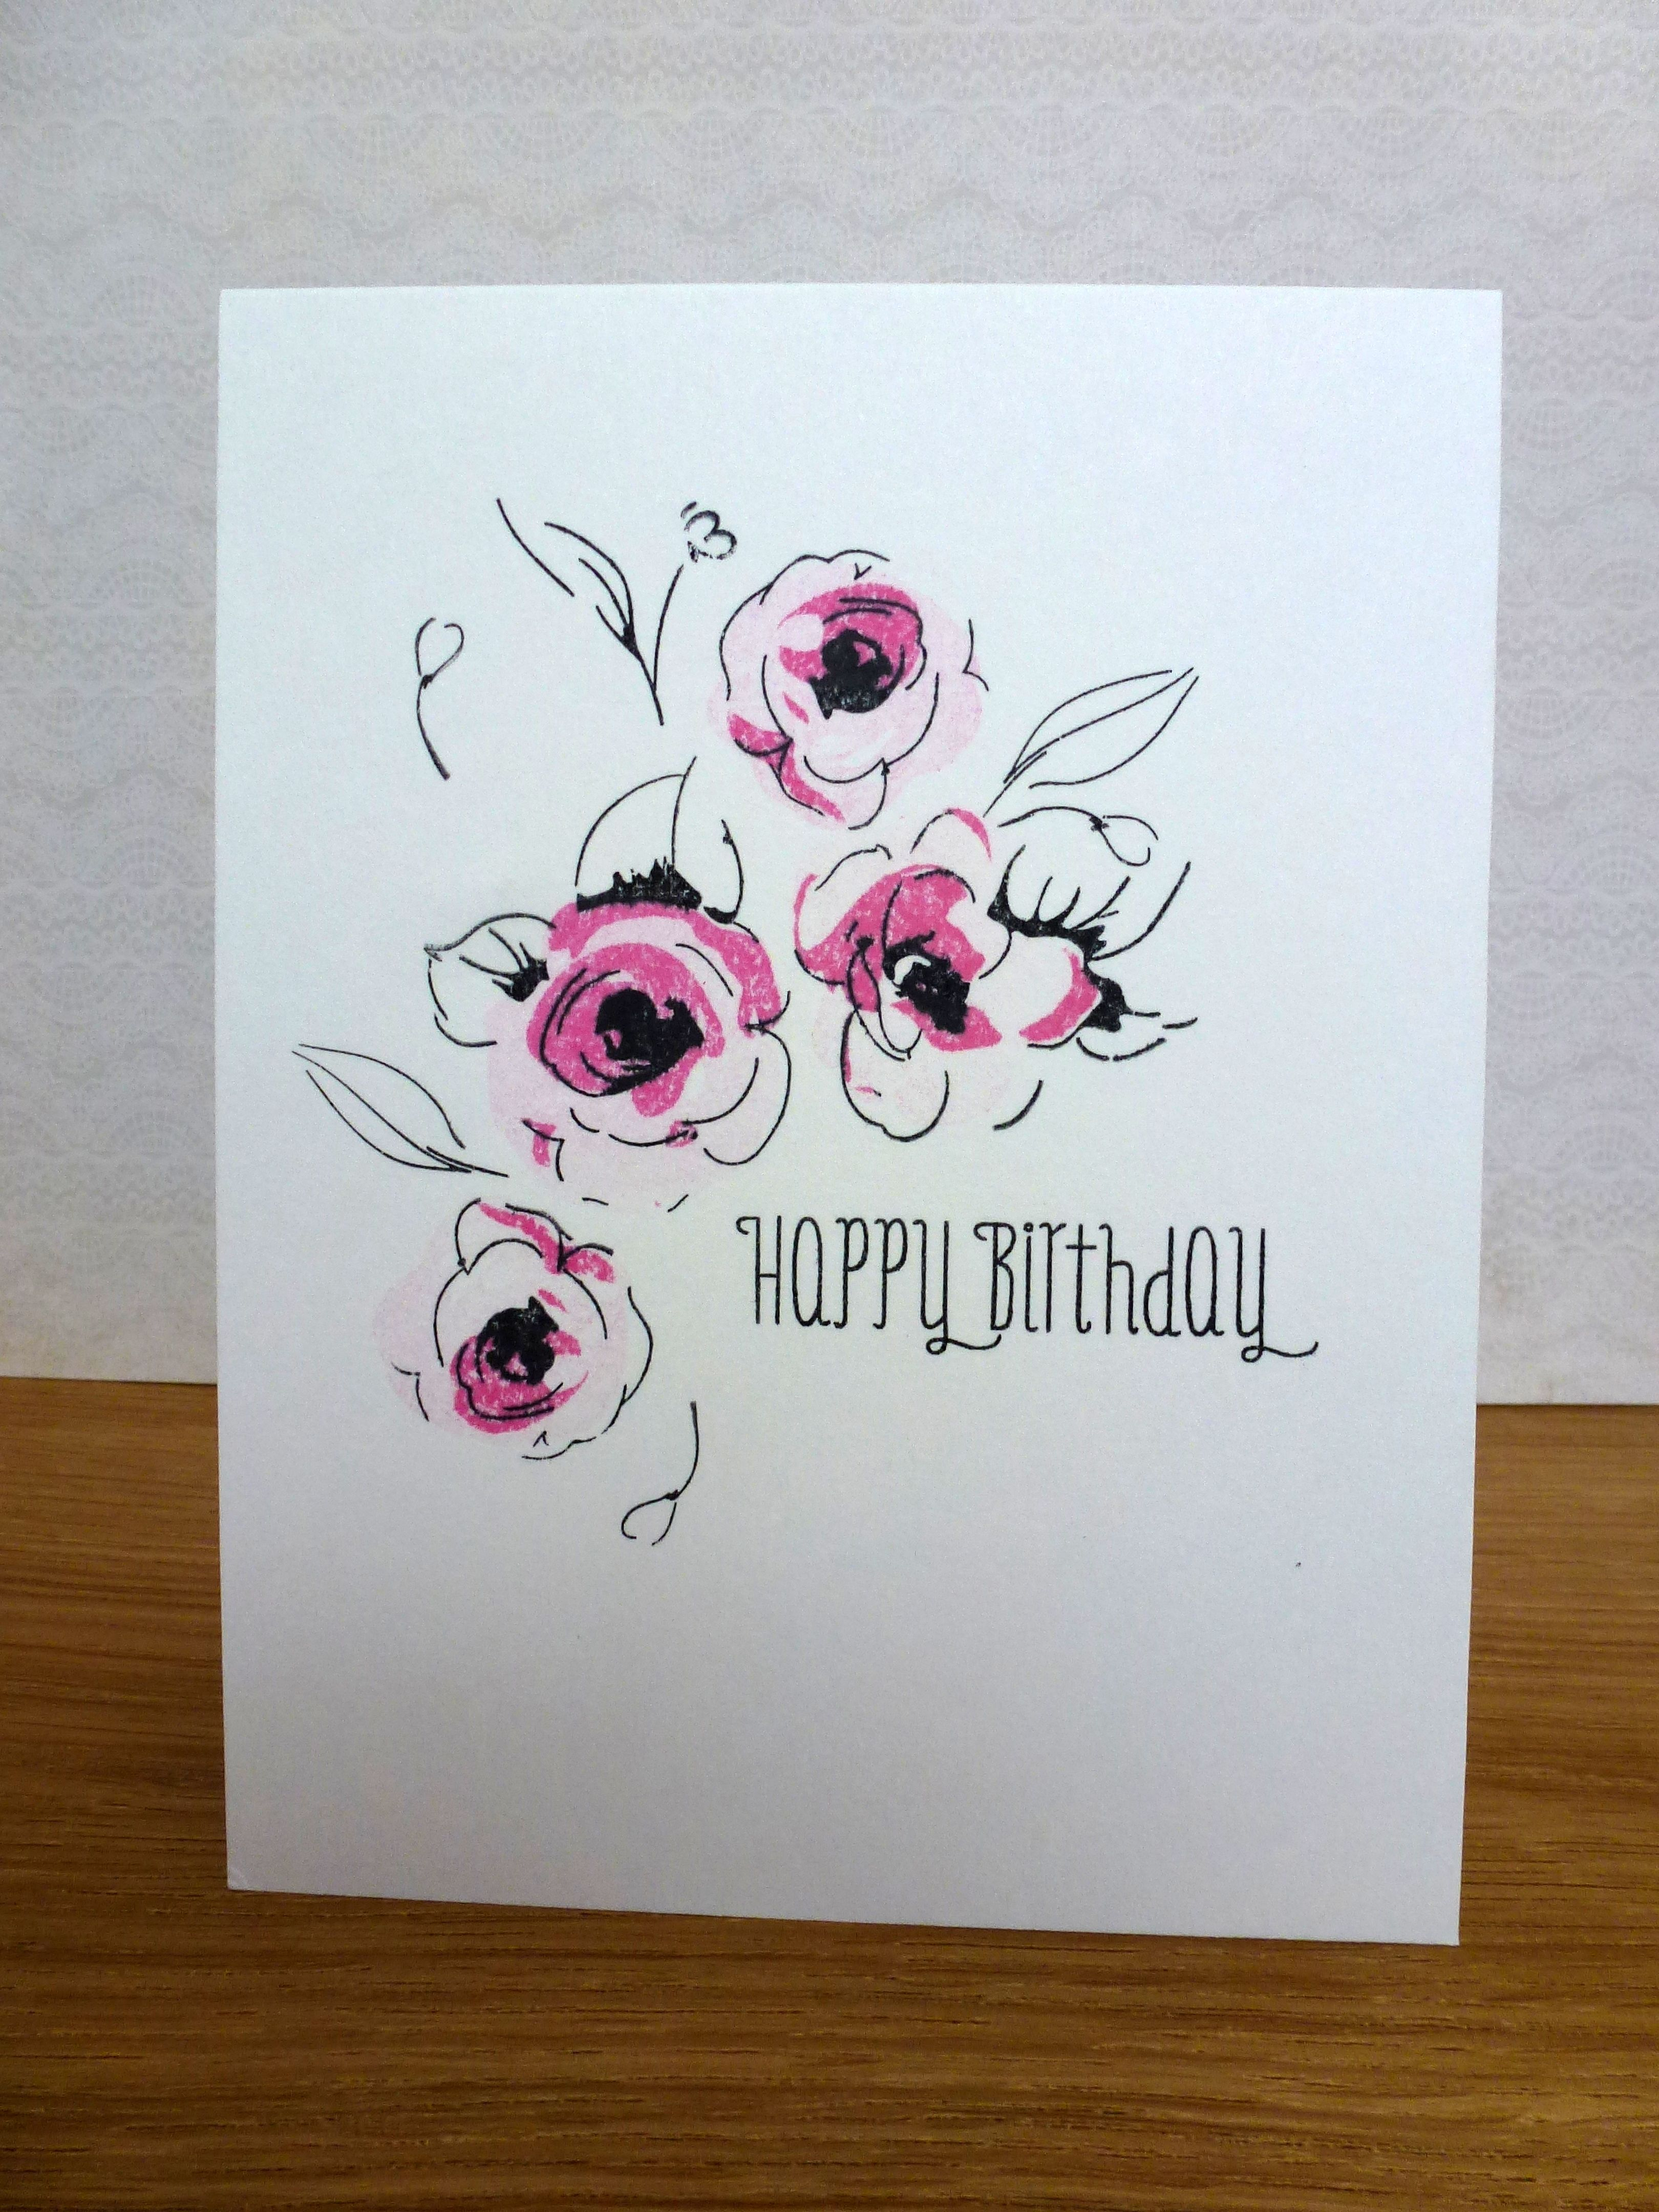 Altenew painted flowers and wplus9 more fresh cuts altenew cards altenew painted flowers and wplus9 more fresh cuts card ideas birthdaybirthday izmirmasajfo Images